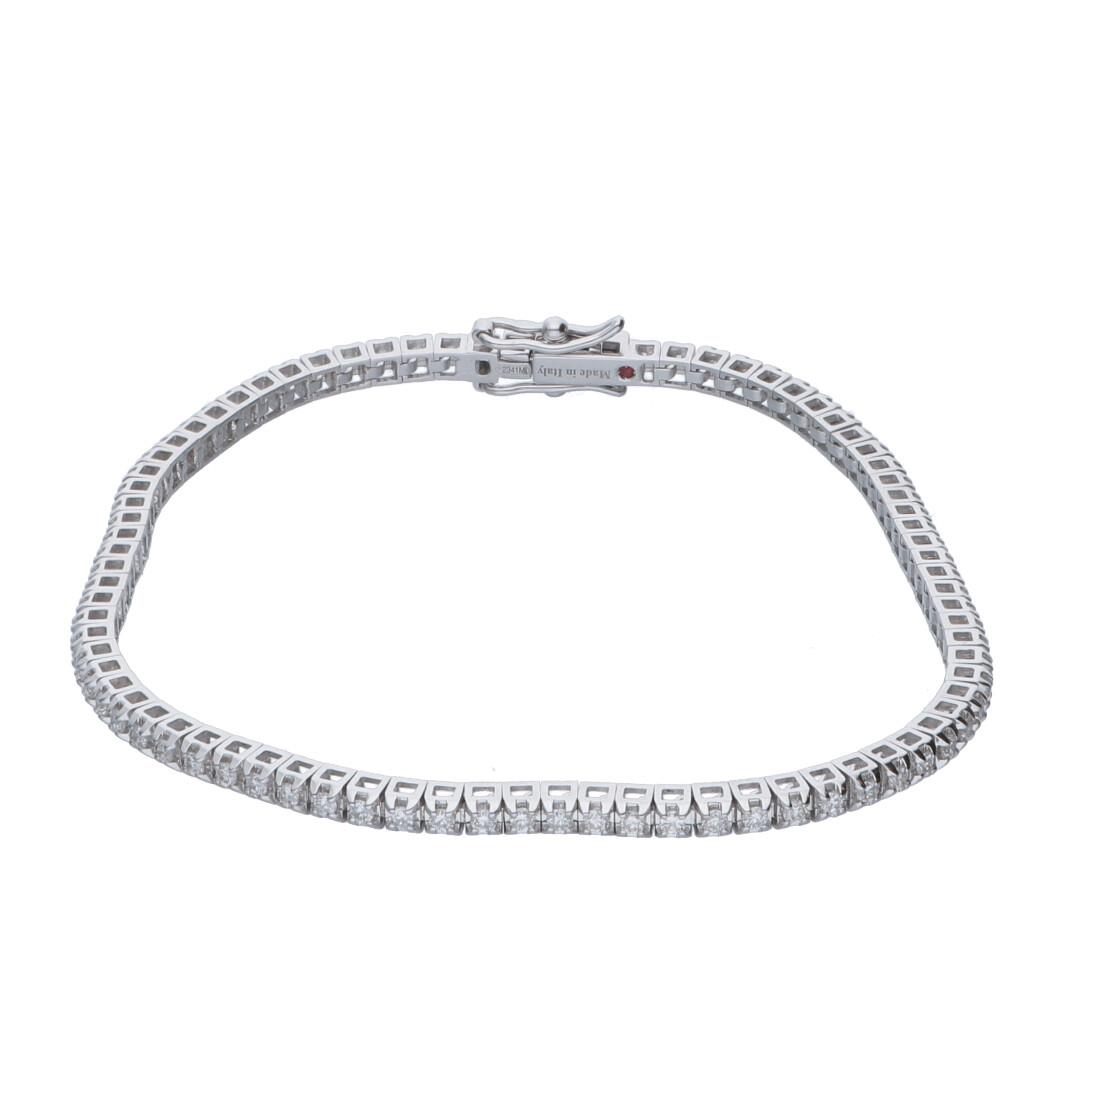 Bracciale tennis piramide in oro bianco con diamanti 